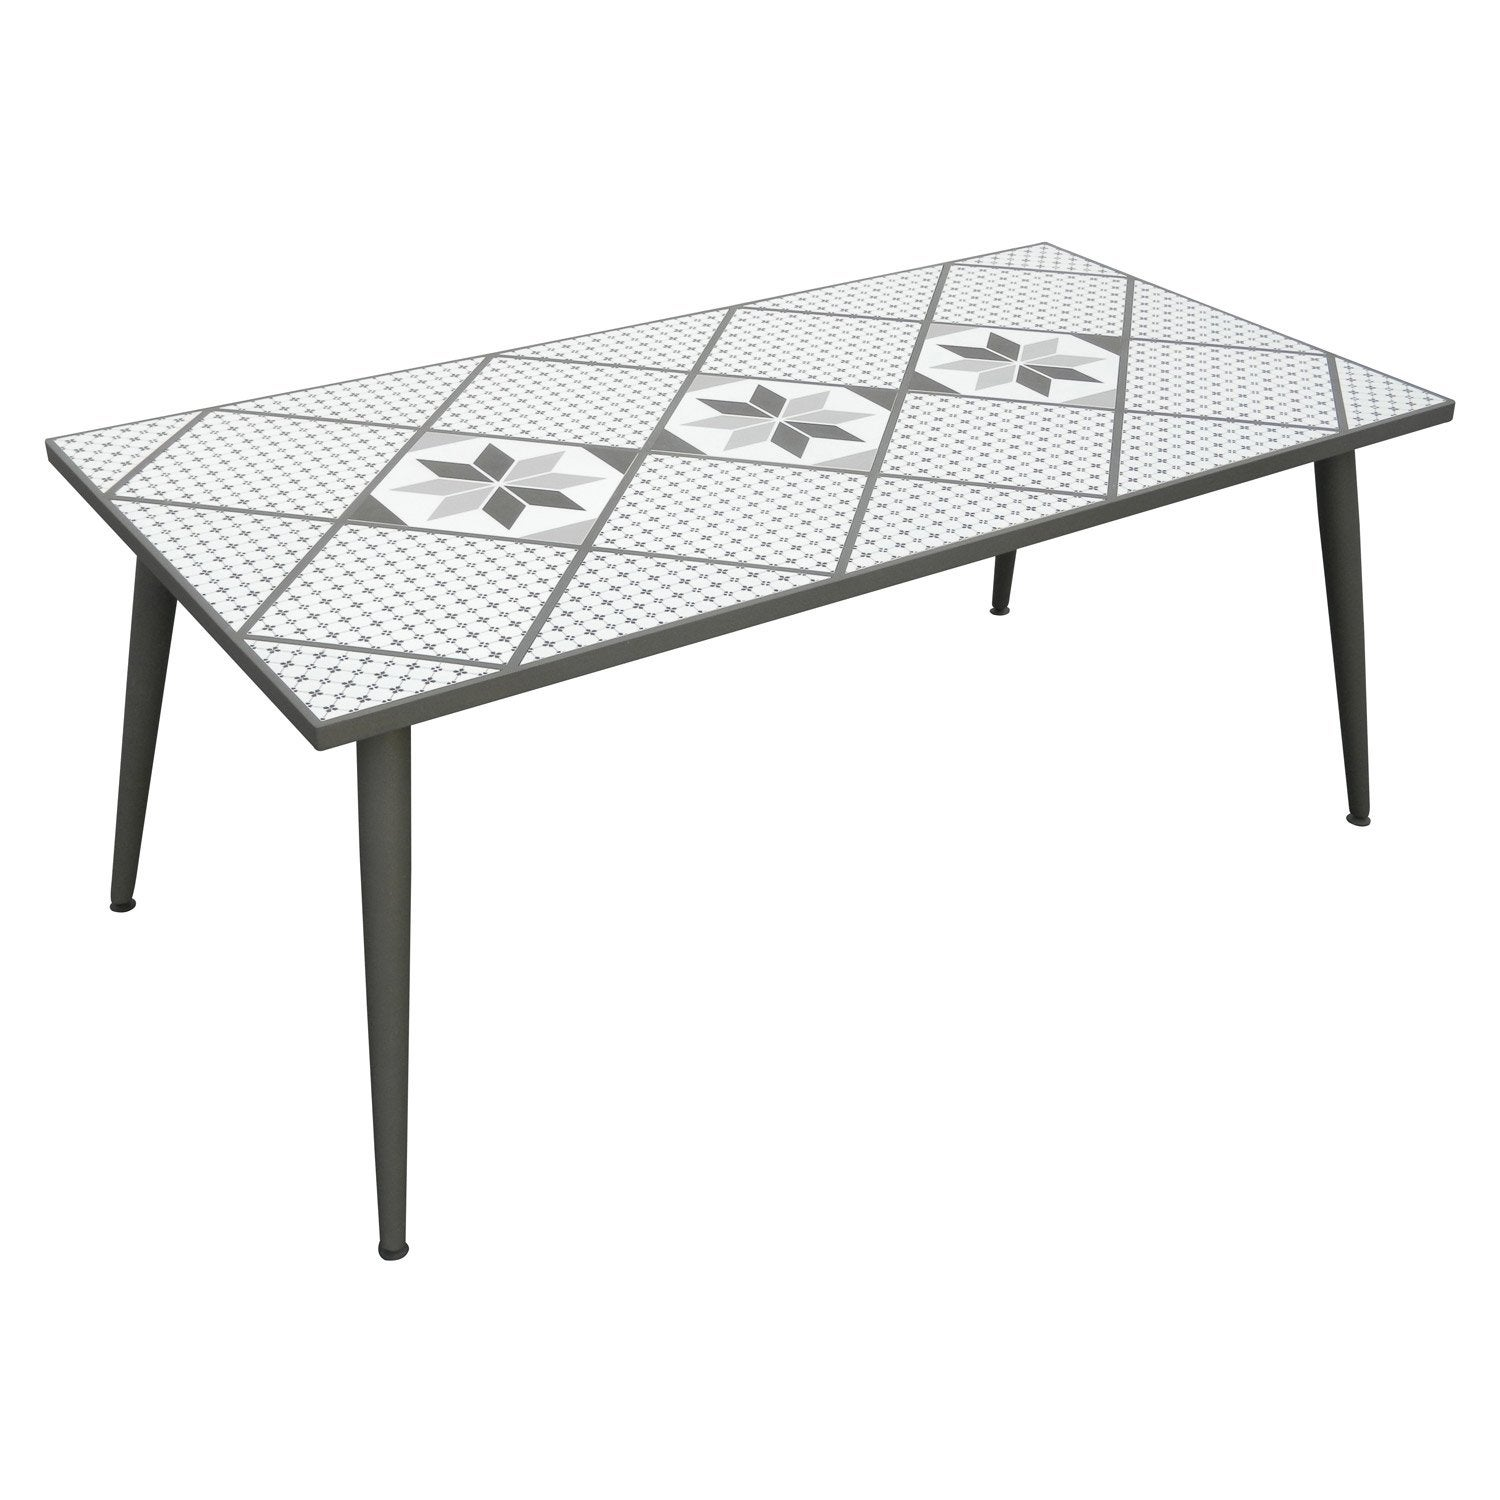 table de jardin mosaika rectangulaire gris 6 personnes | leroy merlin